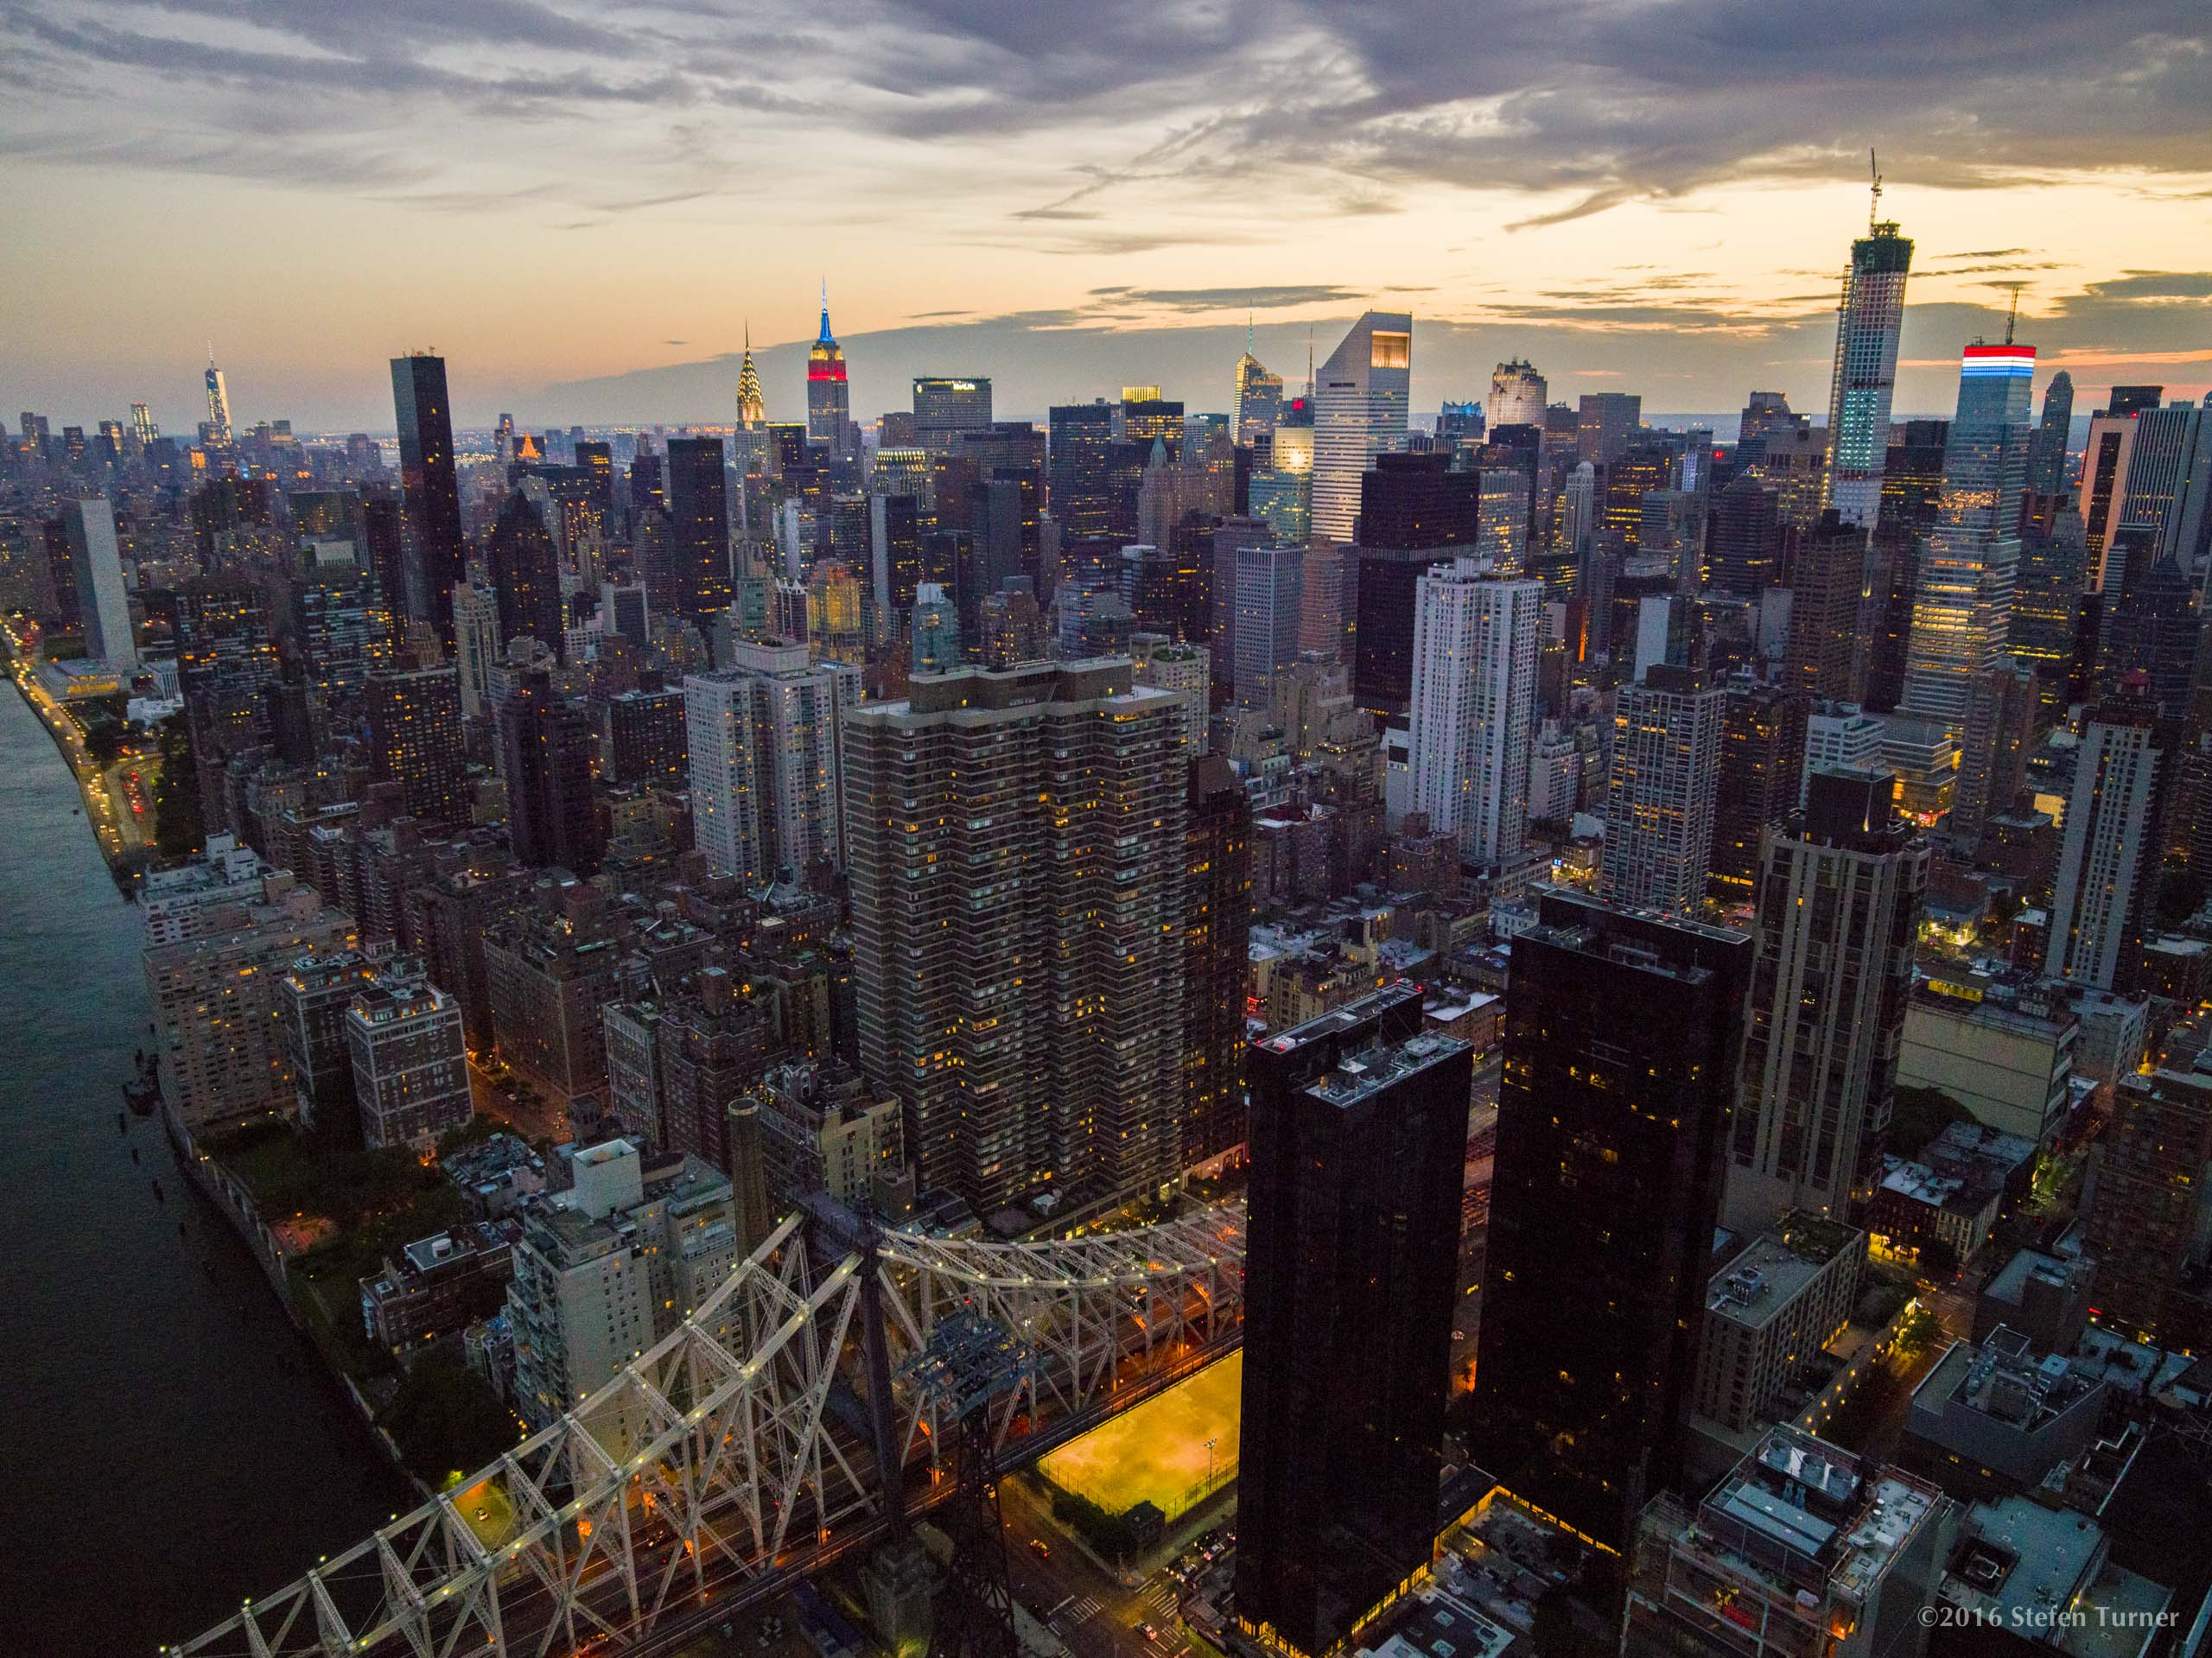 New York City aerial photography by Stefen Turne